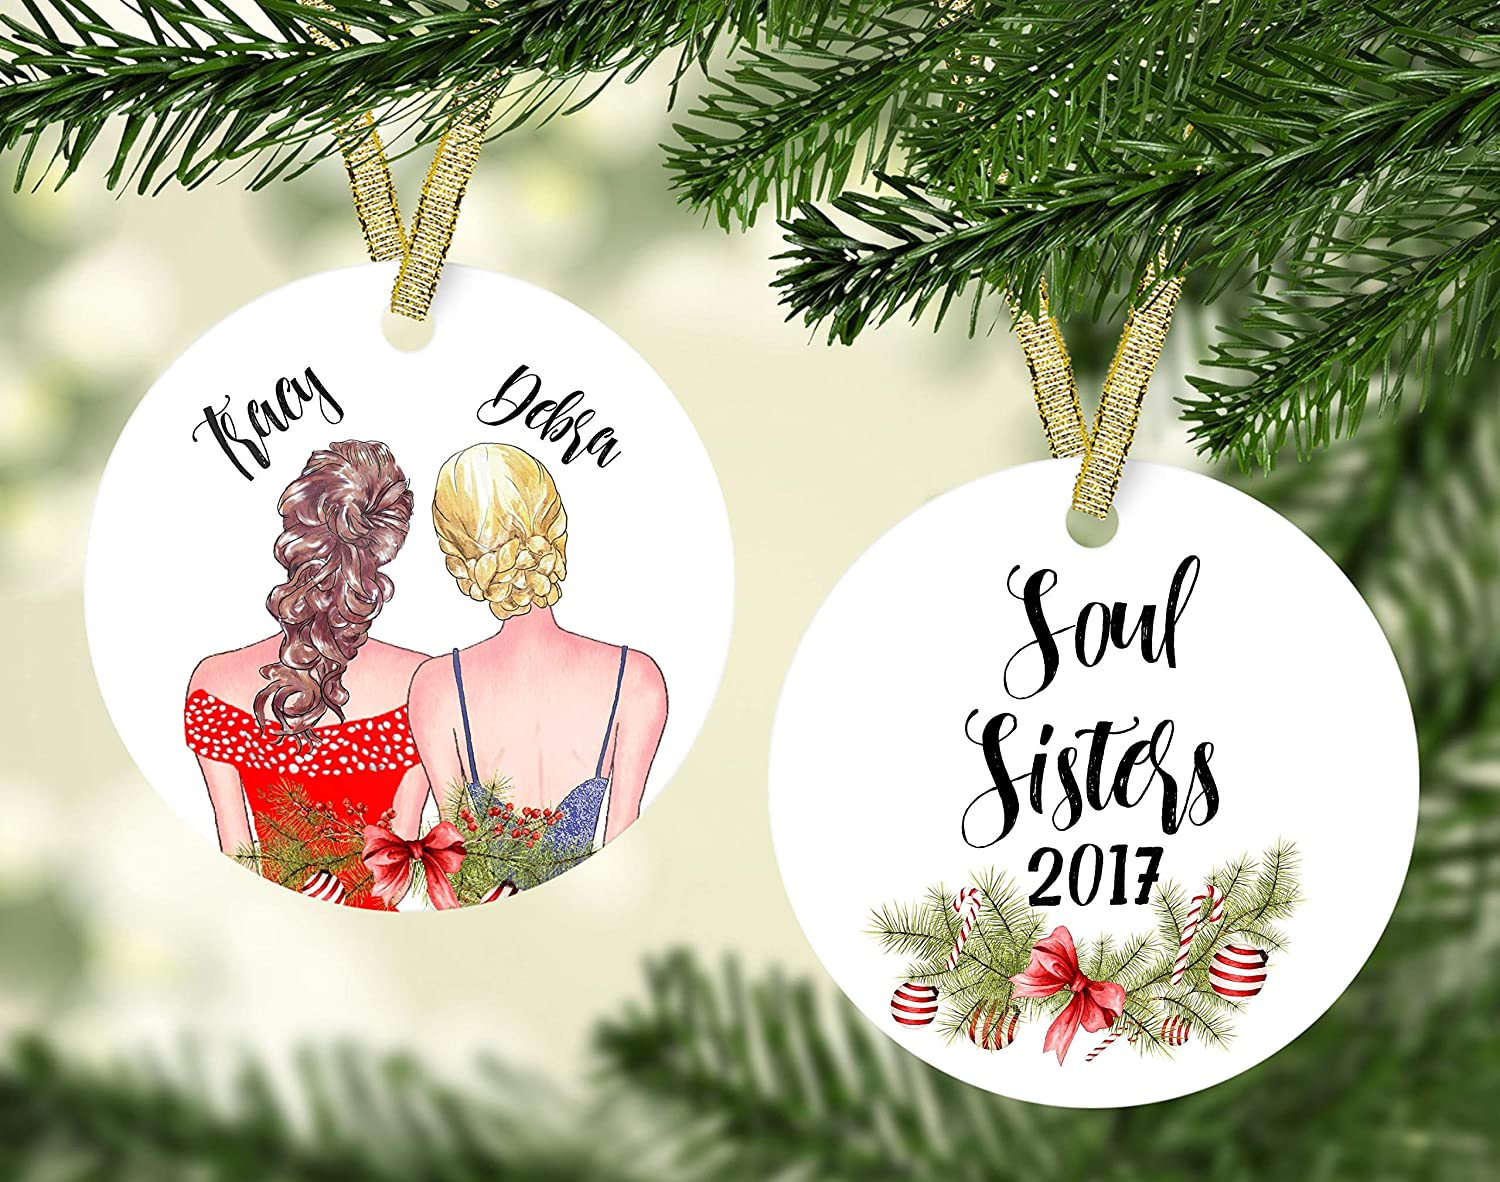 amazon com fhdang decor christmas ornament for friends best friend ornament personalized ornament bff gift personalized friend ornament soul sisters besties 3 inches home kitchen fhdang decor christmas ornament